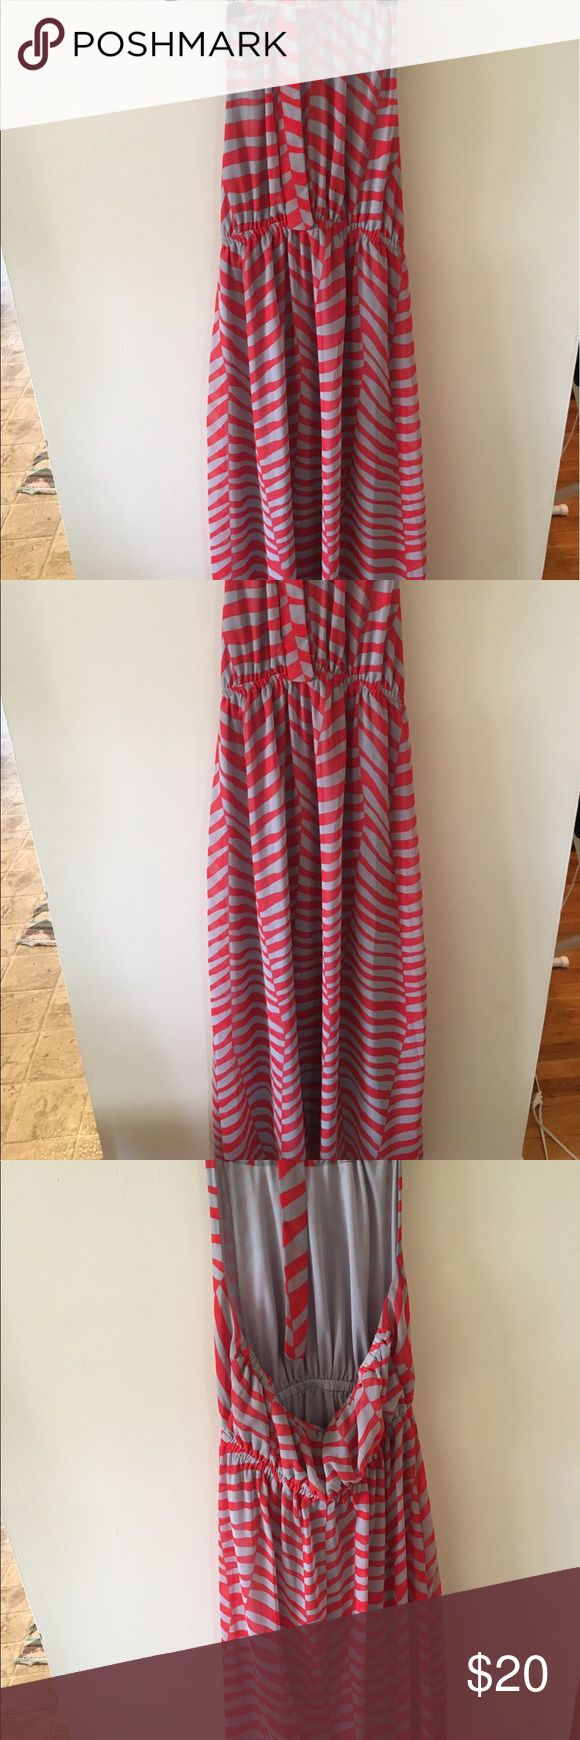 Forever 21 Maxi Dress Forever 21 gray and red Maxi dress- halter neck-- ties around neck. Size Small. Forever 21 Dresses Maxi